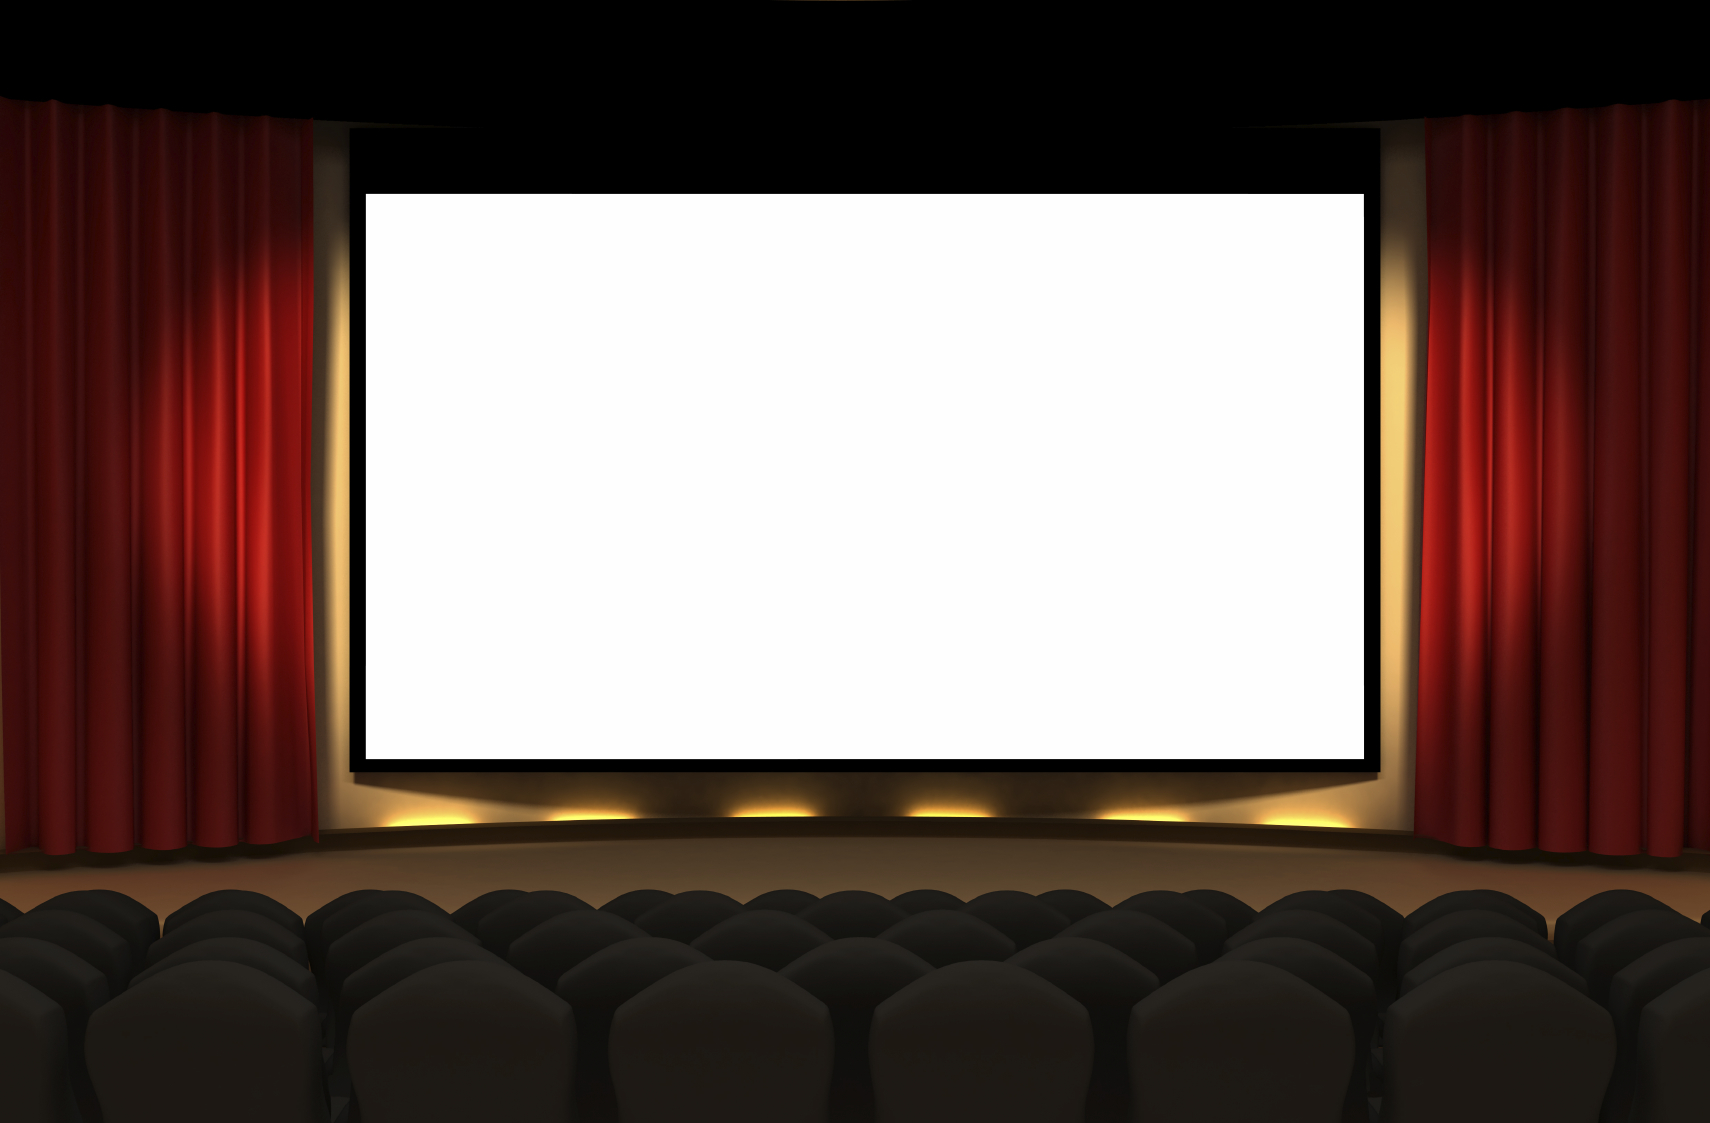 Cinema clipart  Free Film Wallpaper Clip Art - WallpaperSafari